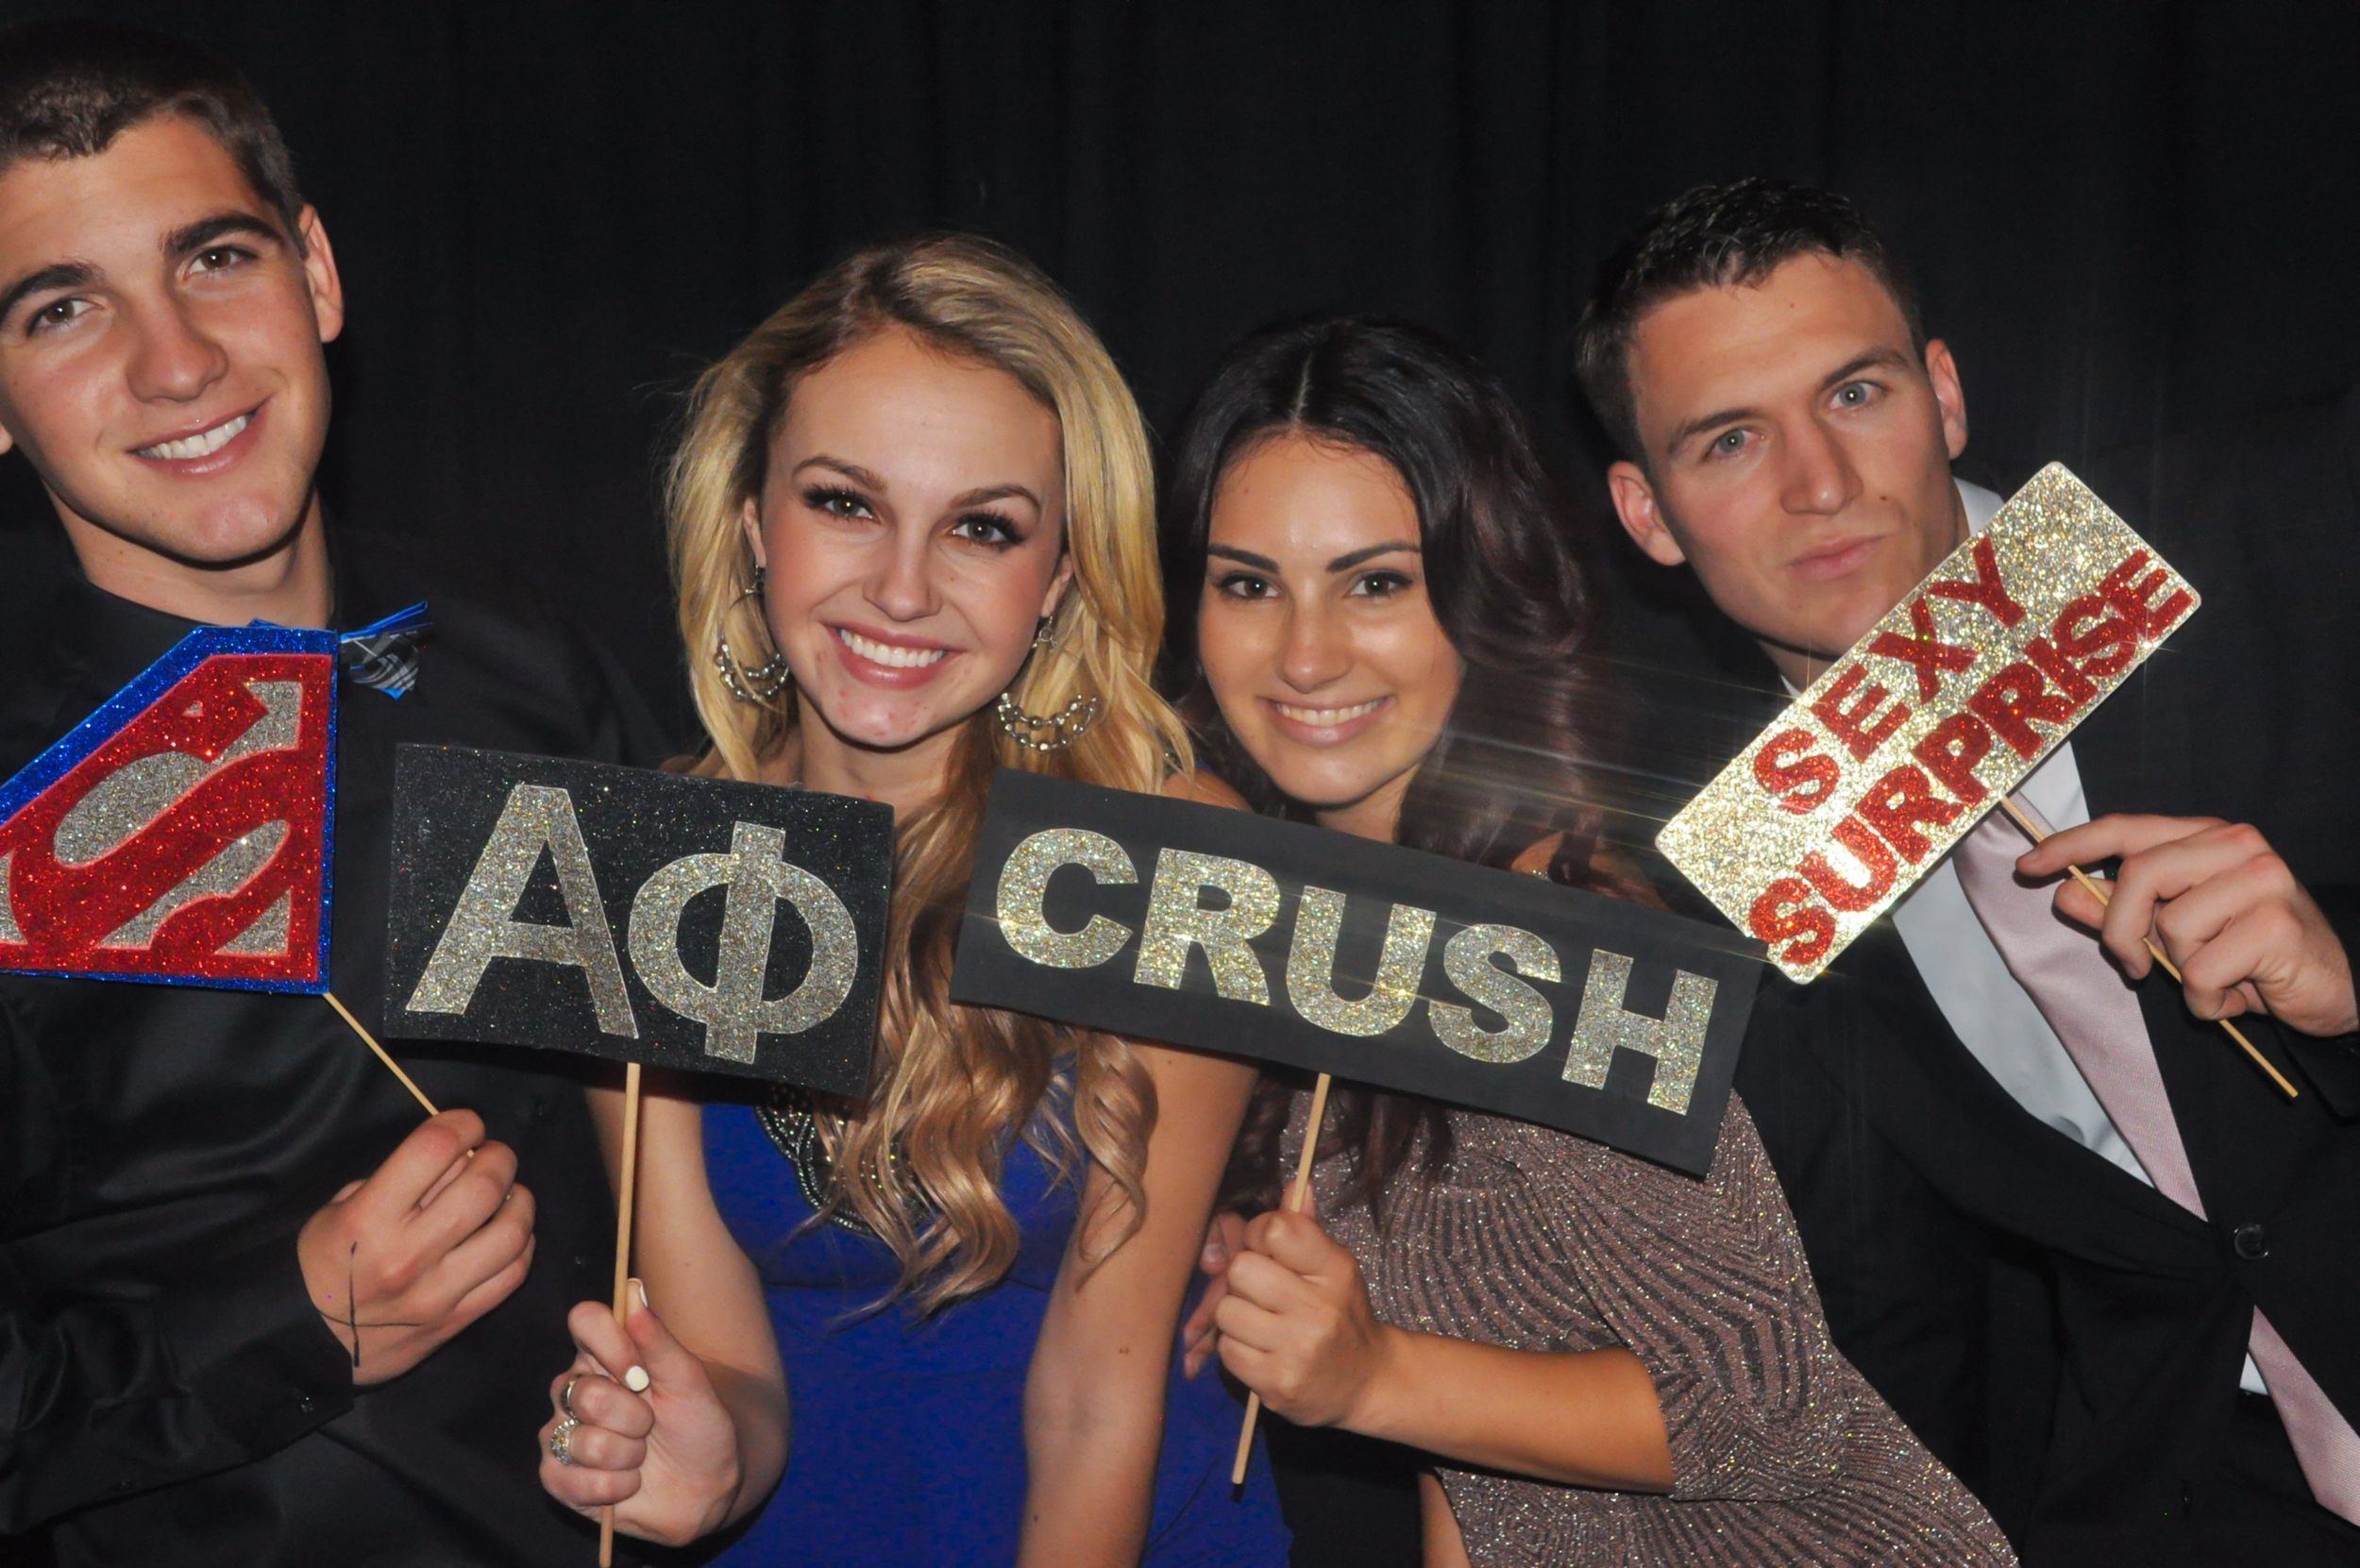 CSULB Alpha Phi Formal Photo Booth 12/05/14